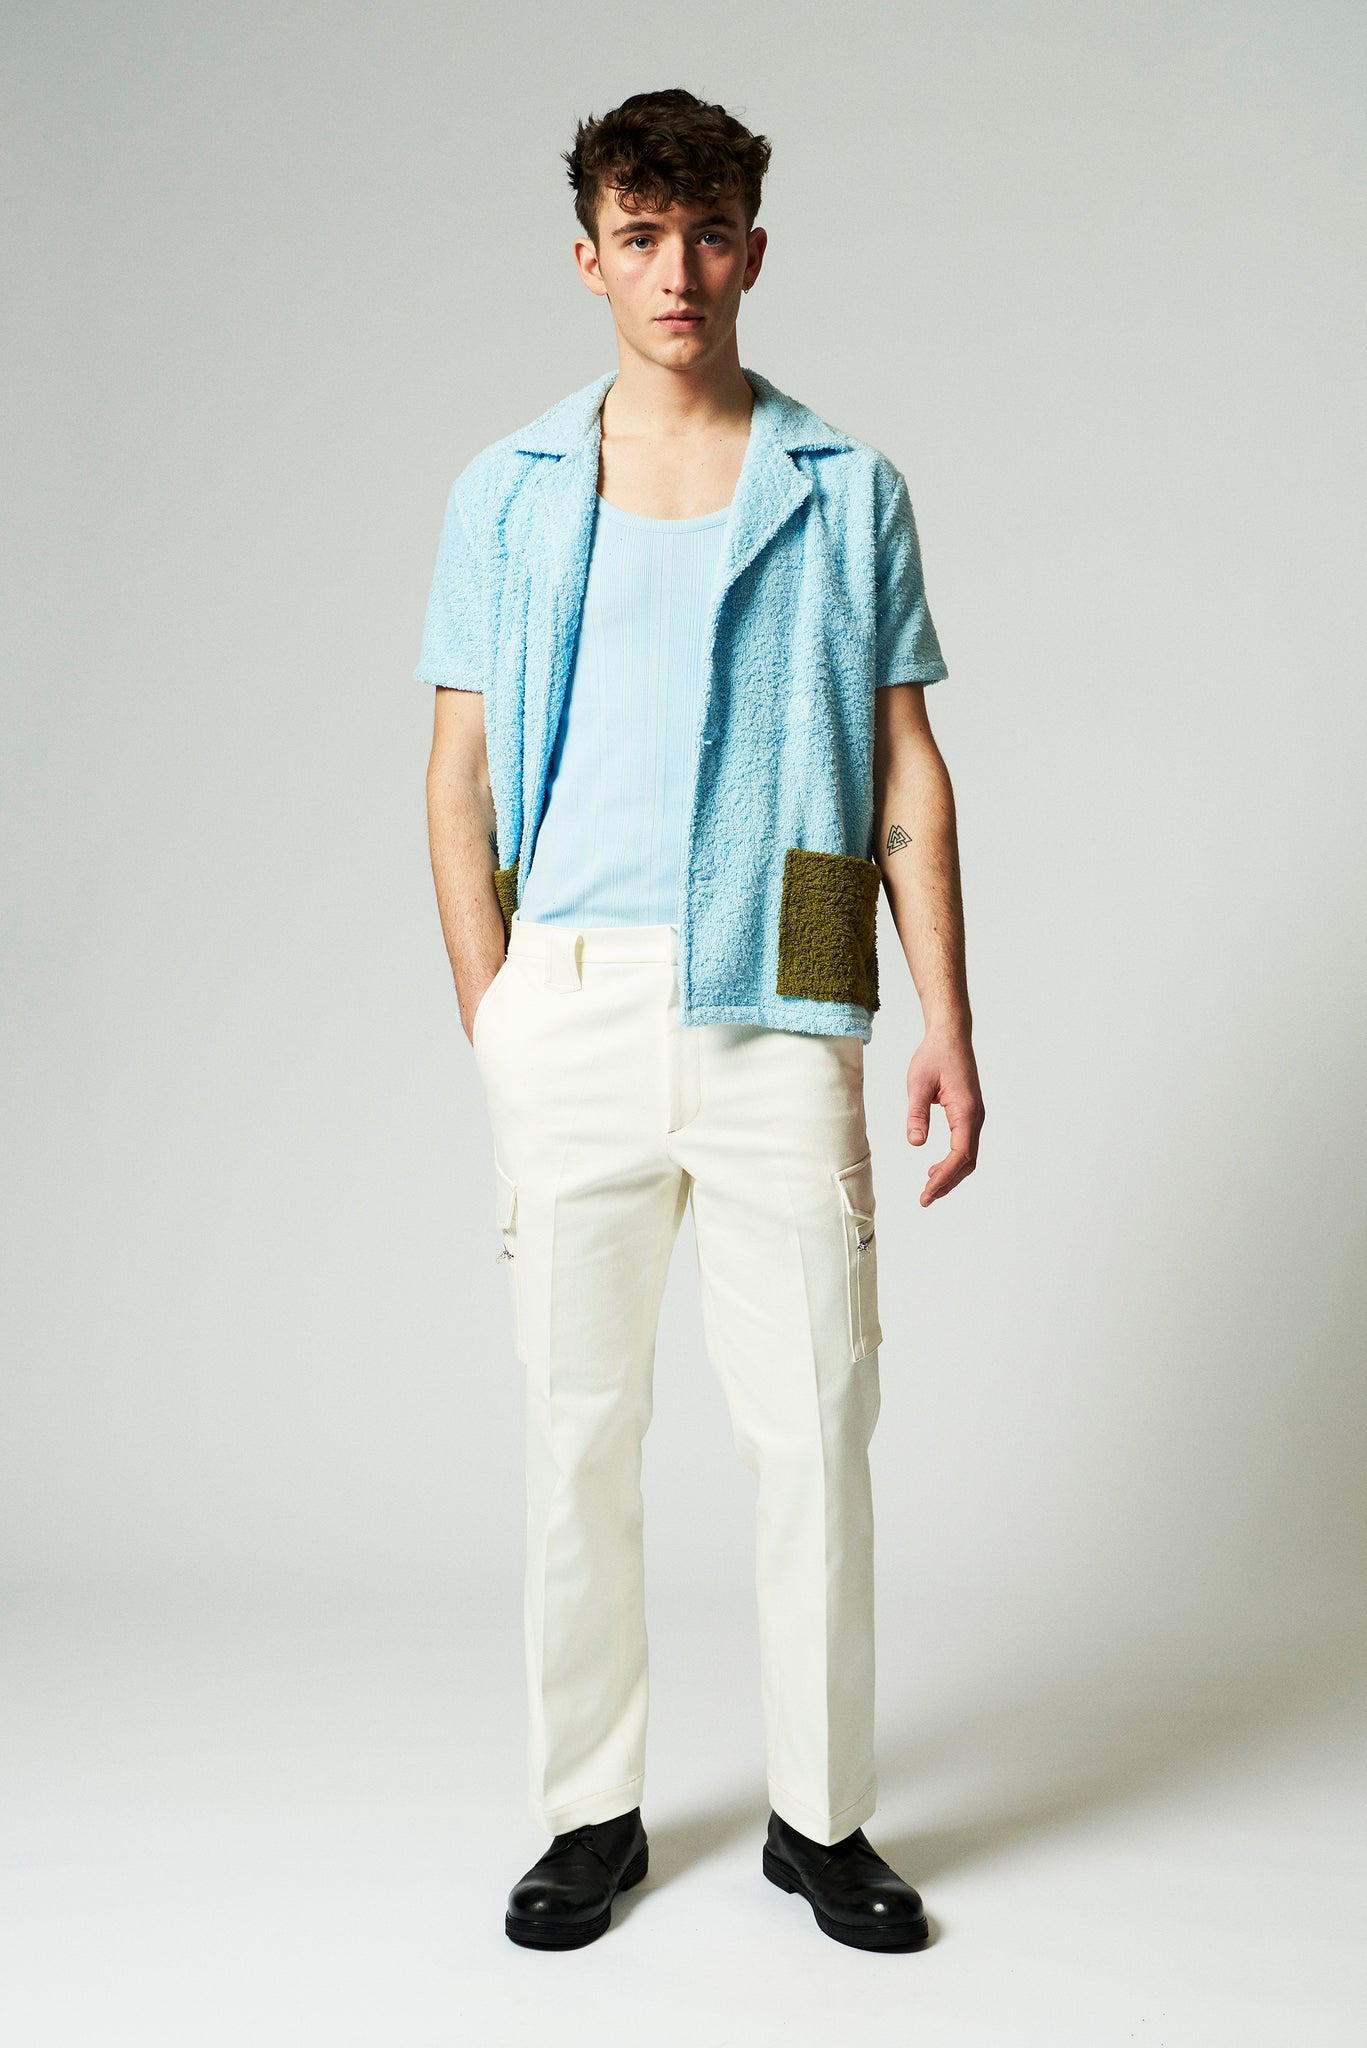 Martin Asbjorn off white canvas cargo trousers